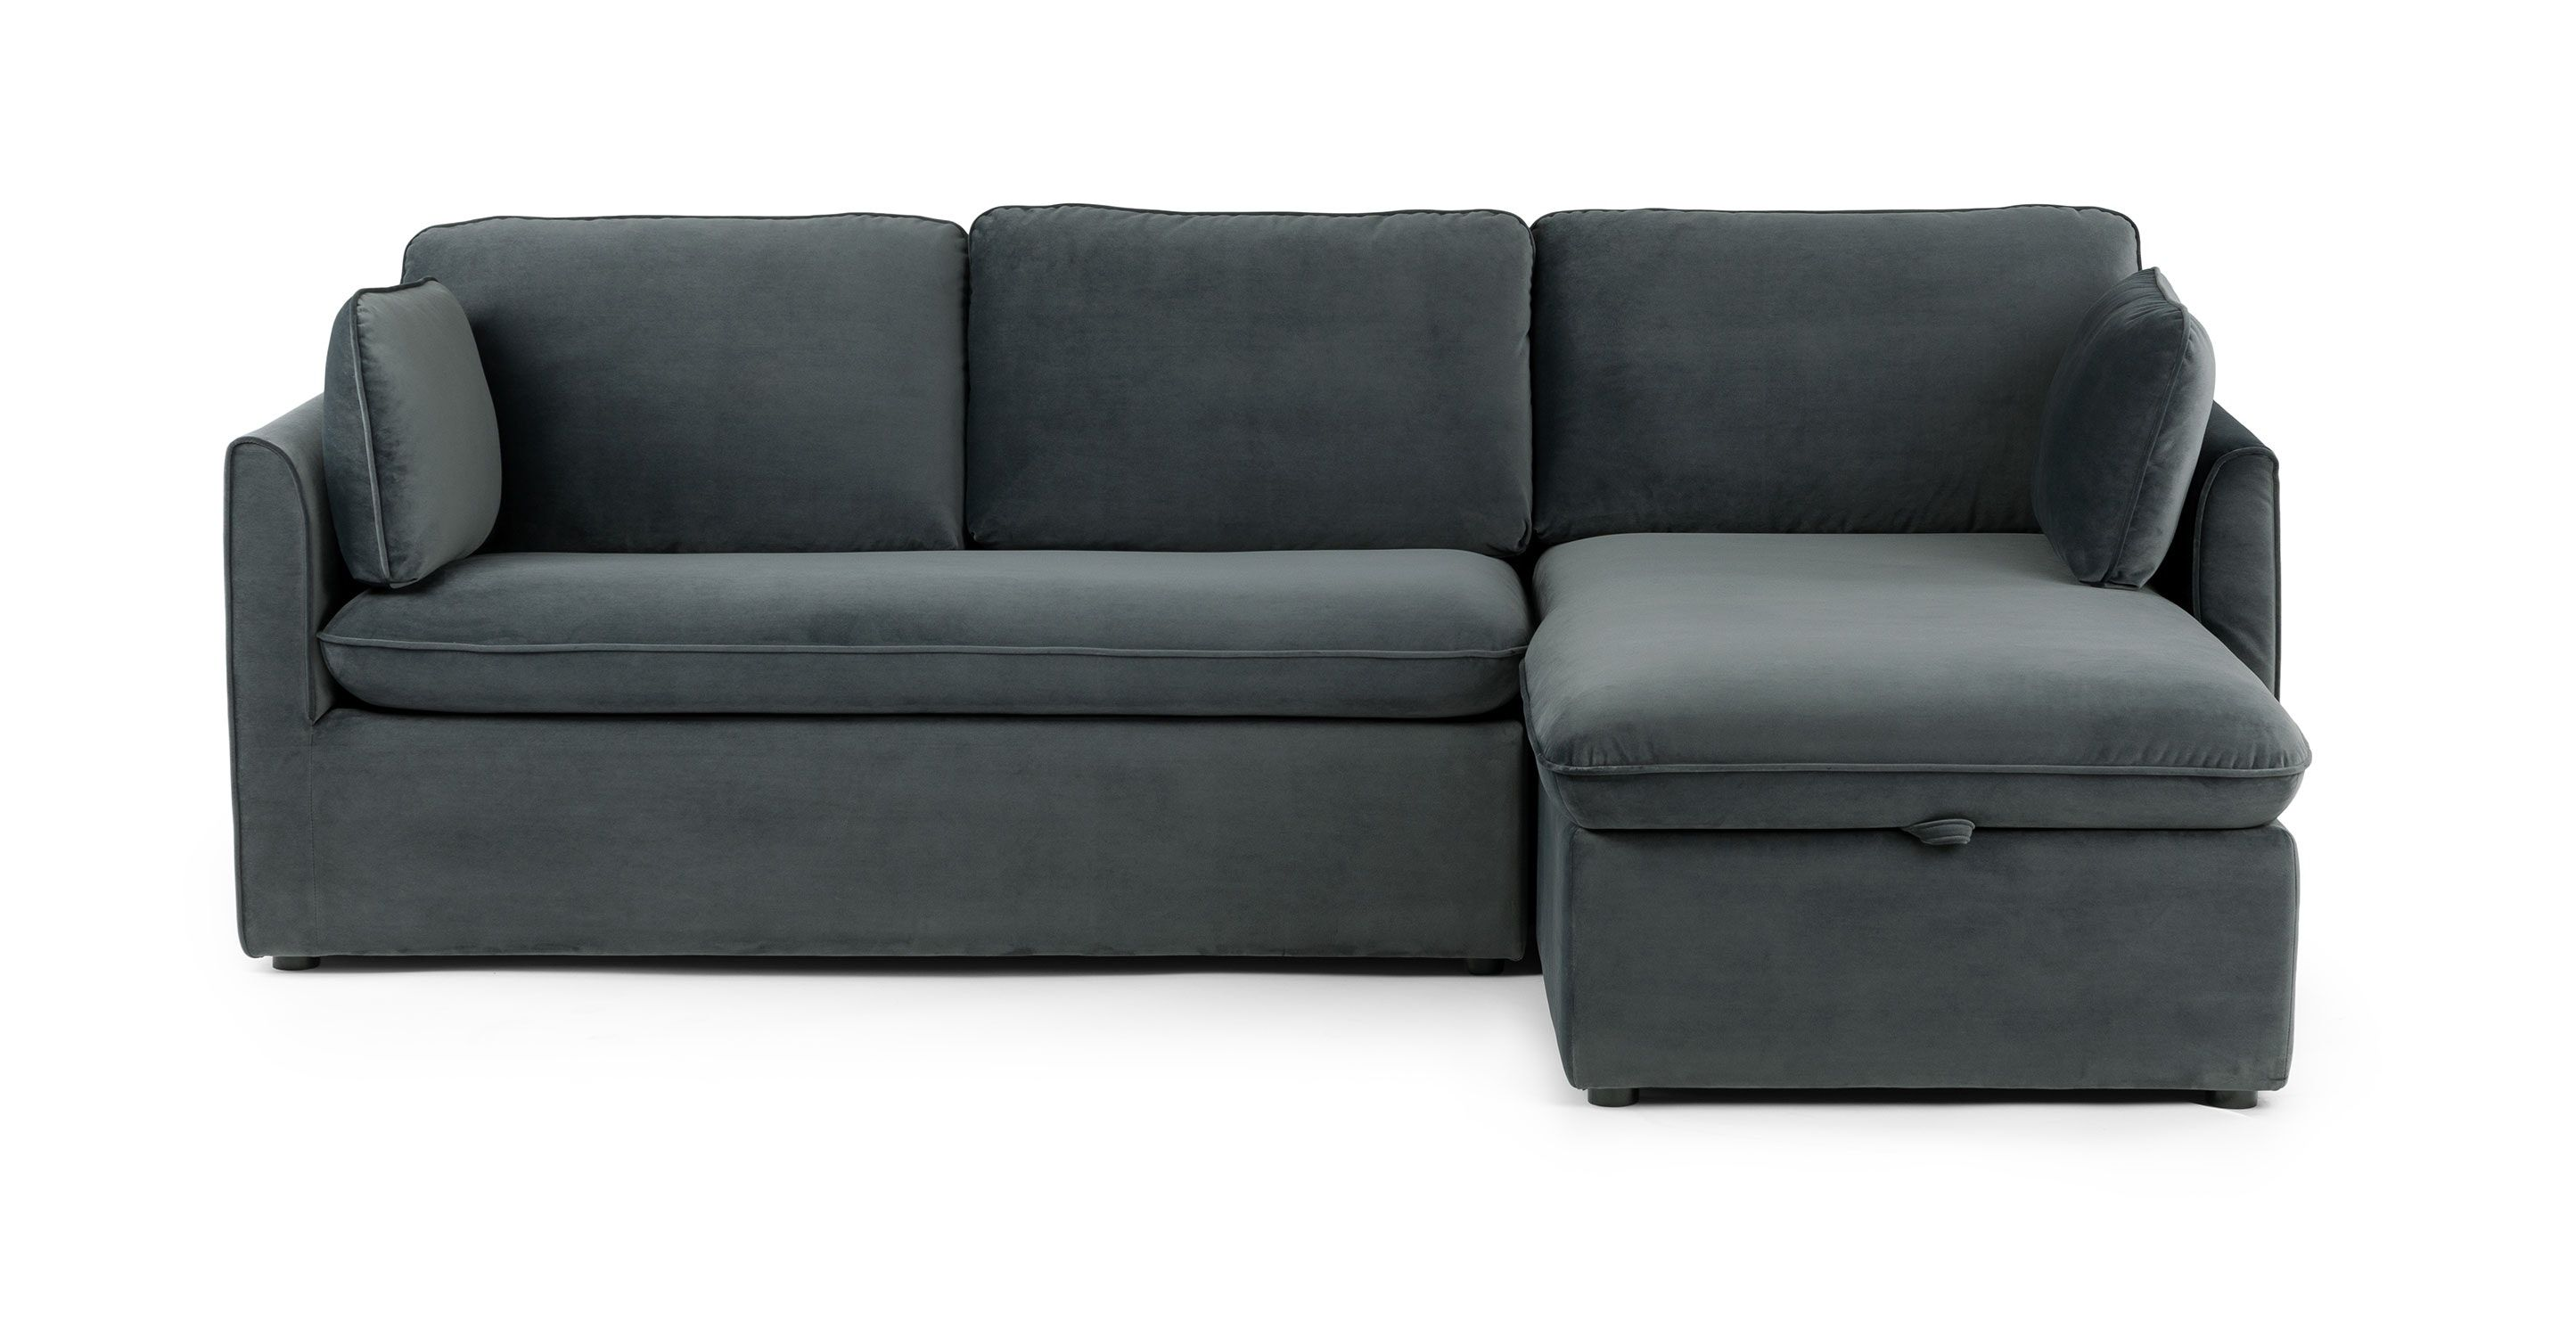 Oneira Deep Sea Blue Right Sofa Bed Sectionals Article Modern Mid Century And Scandinavian Furniture